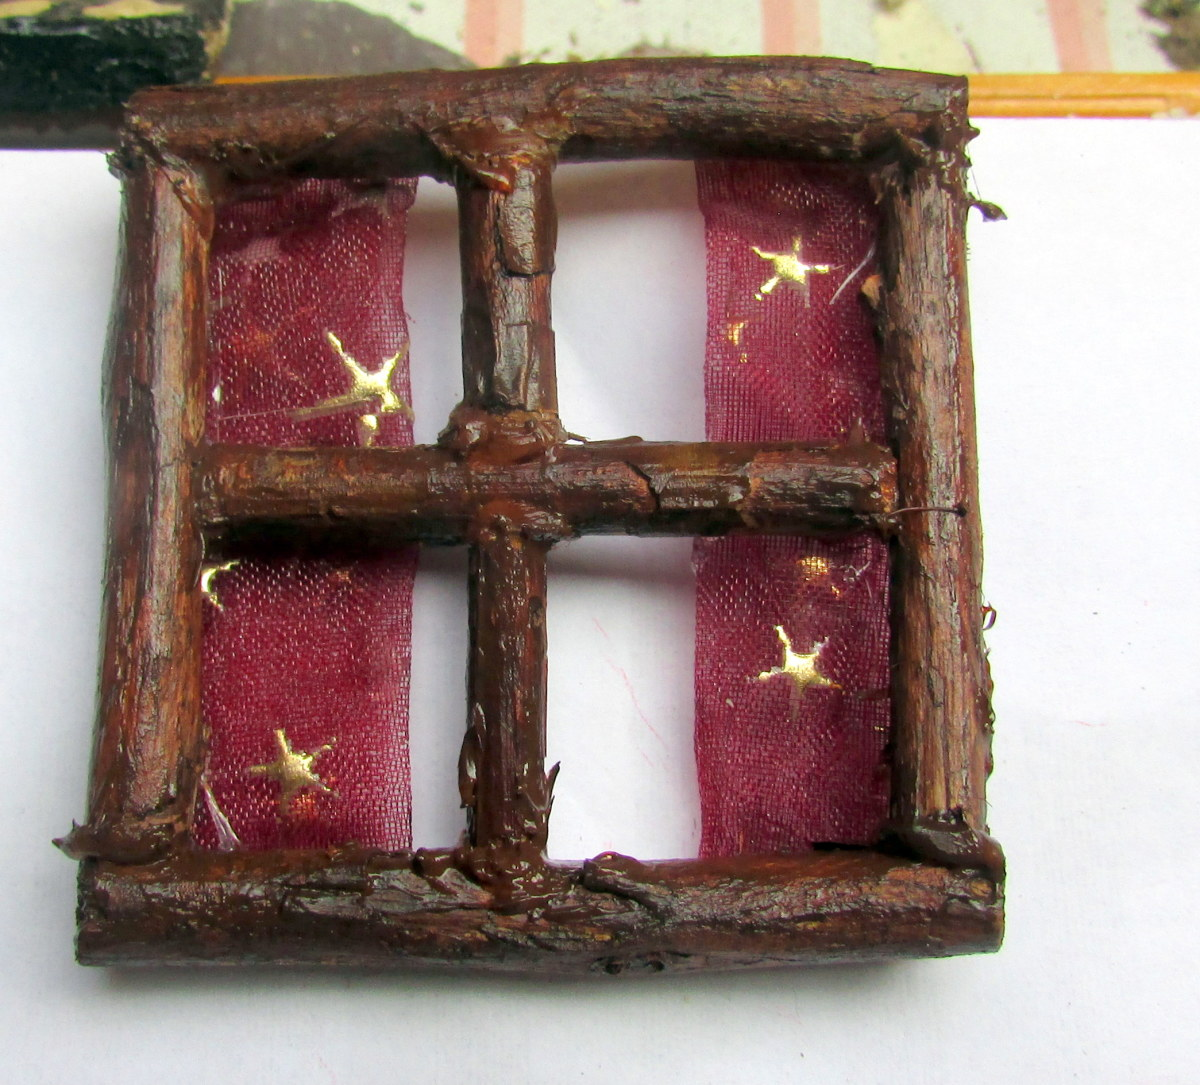 Learn how to make a window for a Fairy House